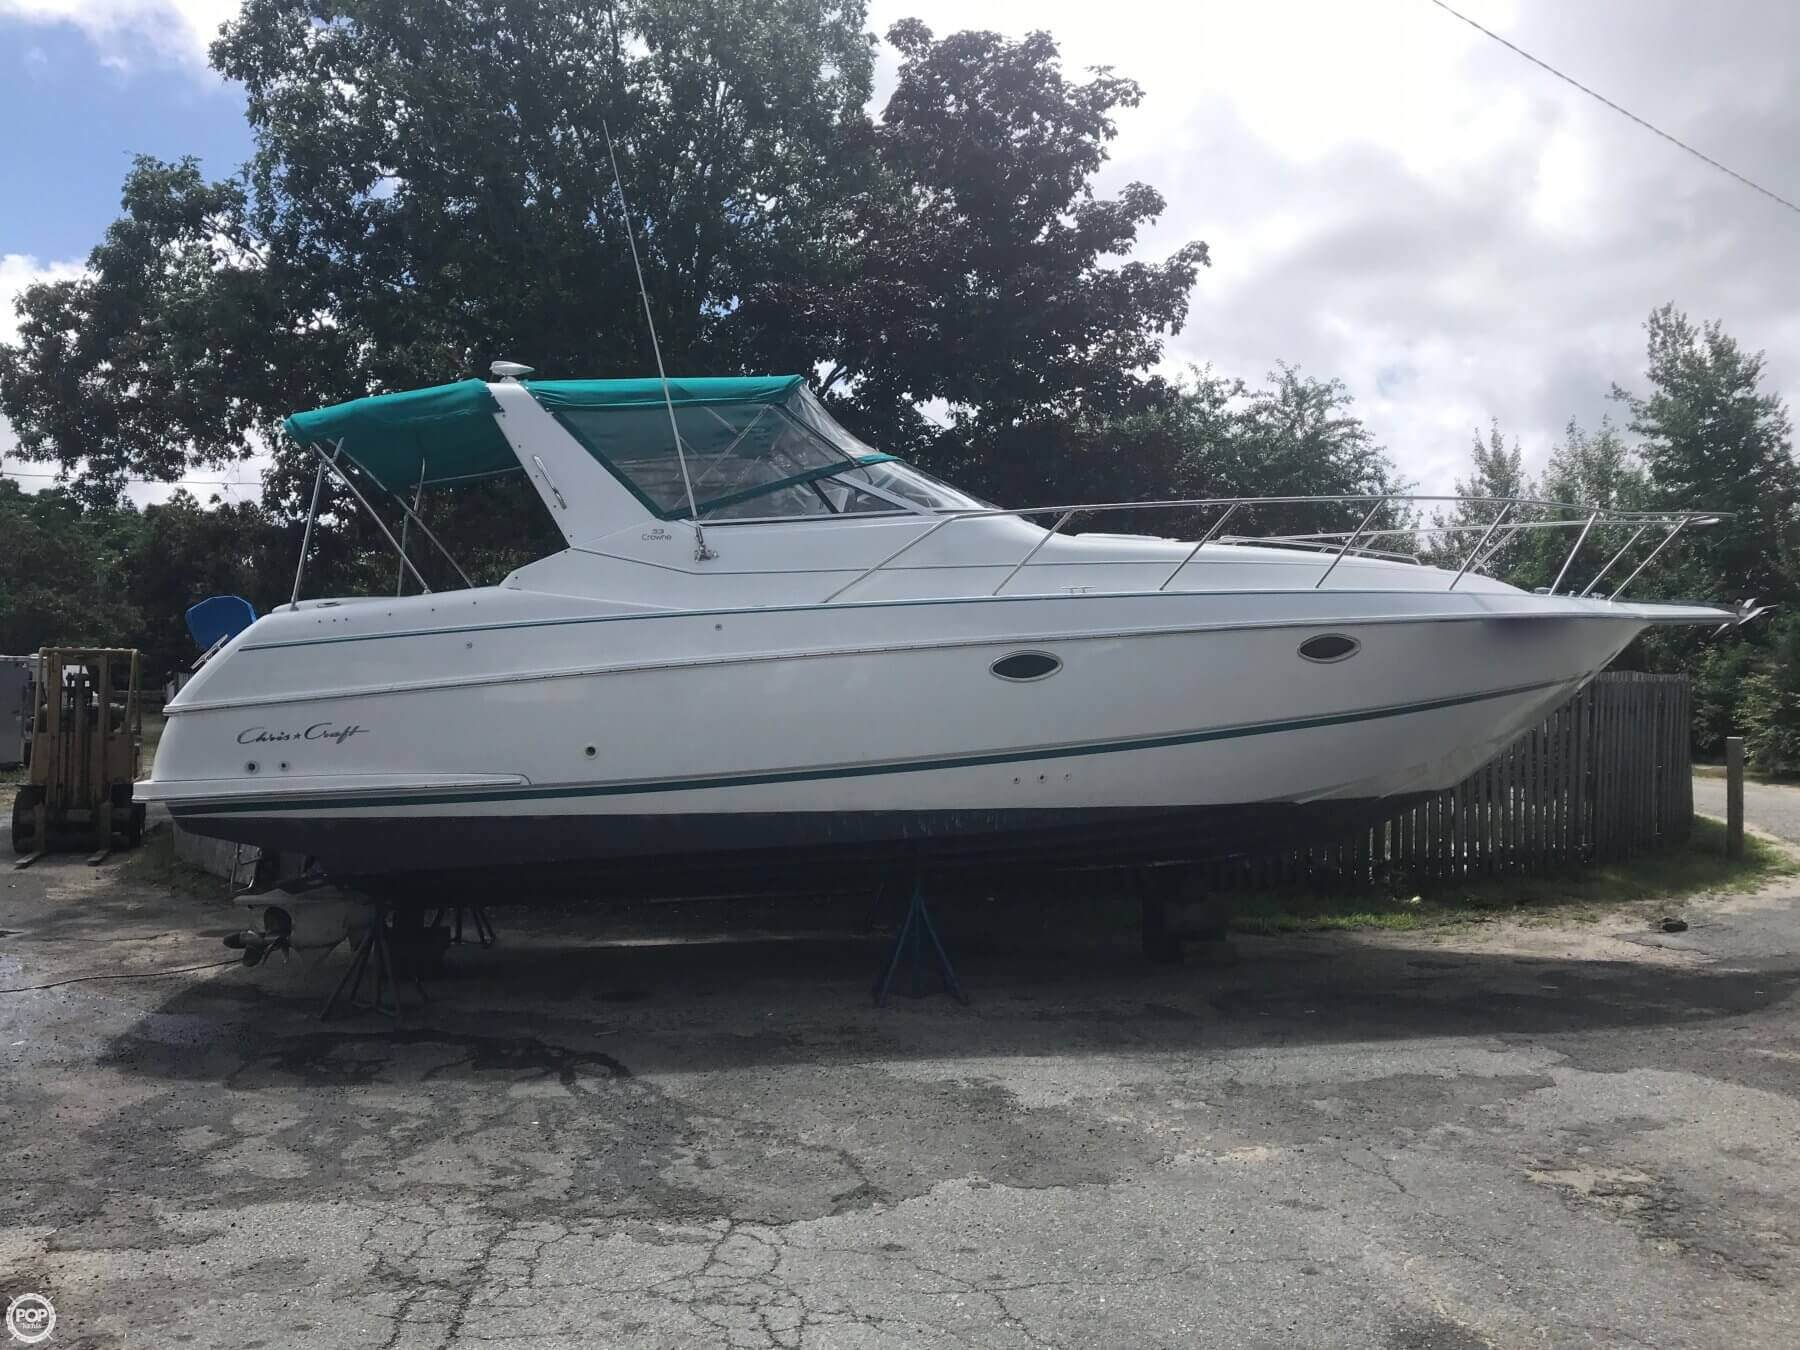 medium resolution of chris craft 33 crowne boat for sale in buzzards bay ma for 27 900 156189